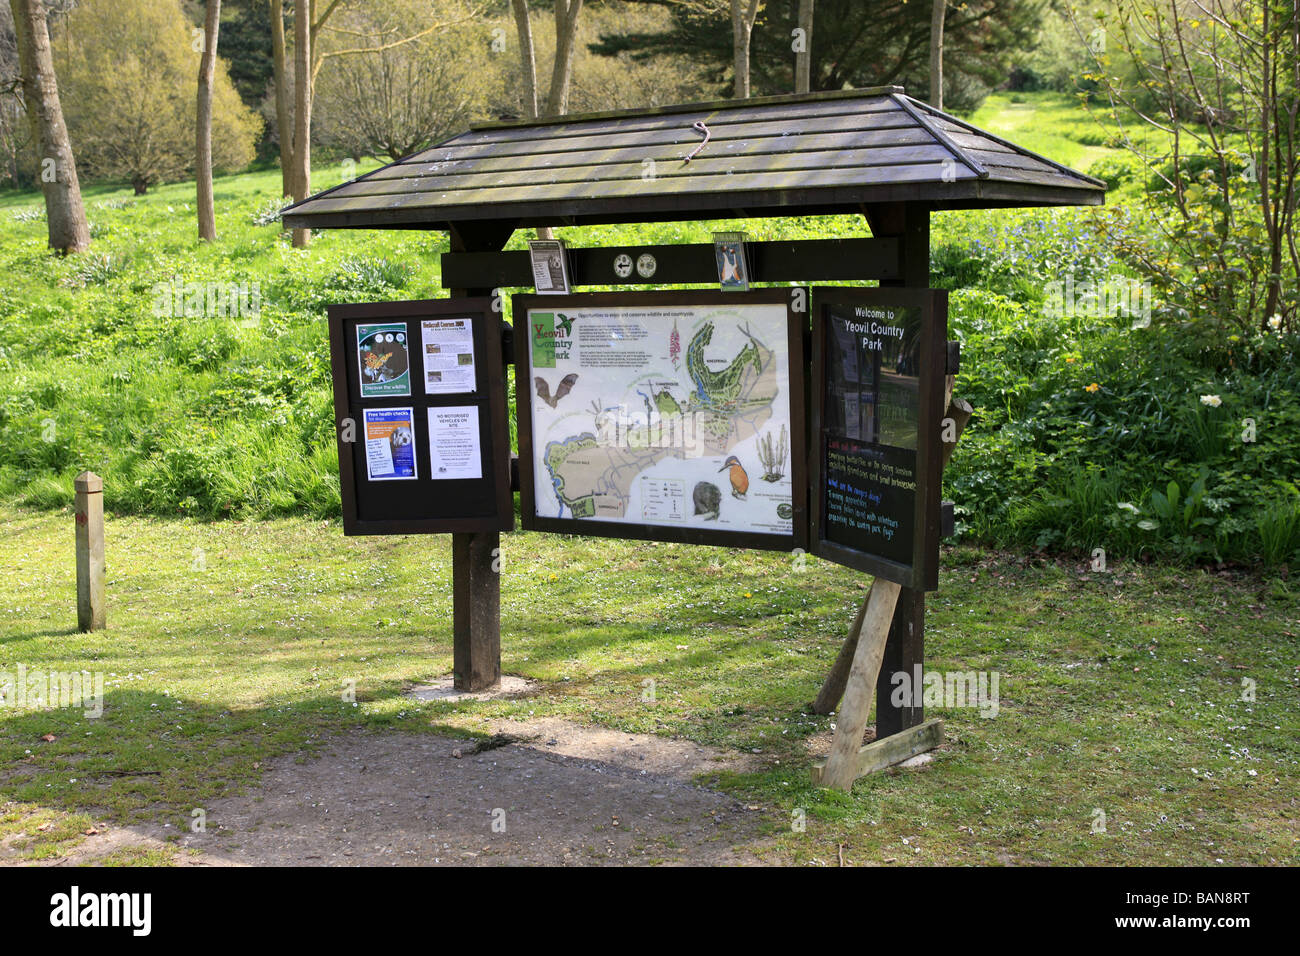 map reading comp with Stock Photo A Woodland Park Information Board And Map 23824860 on Unit Three 1750 1914 in addition F 12 Pics furthermore J 20 Pics as well Stock Photo A Woodland Park Information Board And Map 23824860 additionally F 22 Pics.